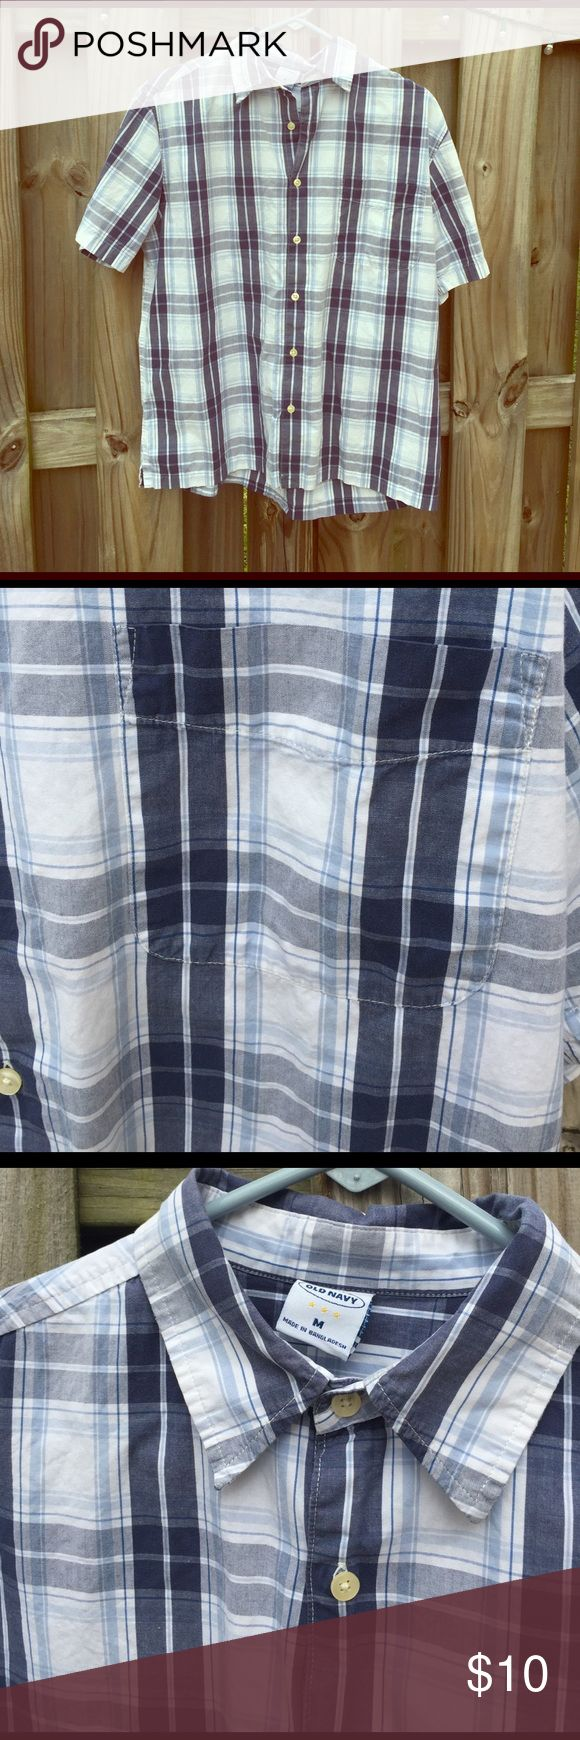 Old Navy white and blue checkered shirt Old Navy white and blue checkered shirt size M Old Navy Shirts Casual Button Down Shirts